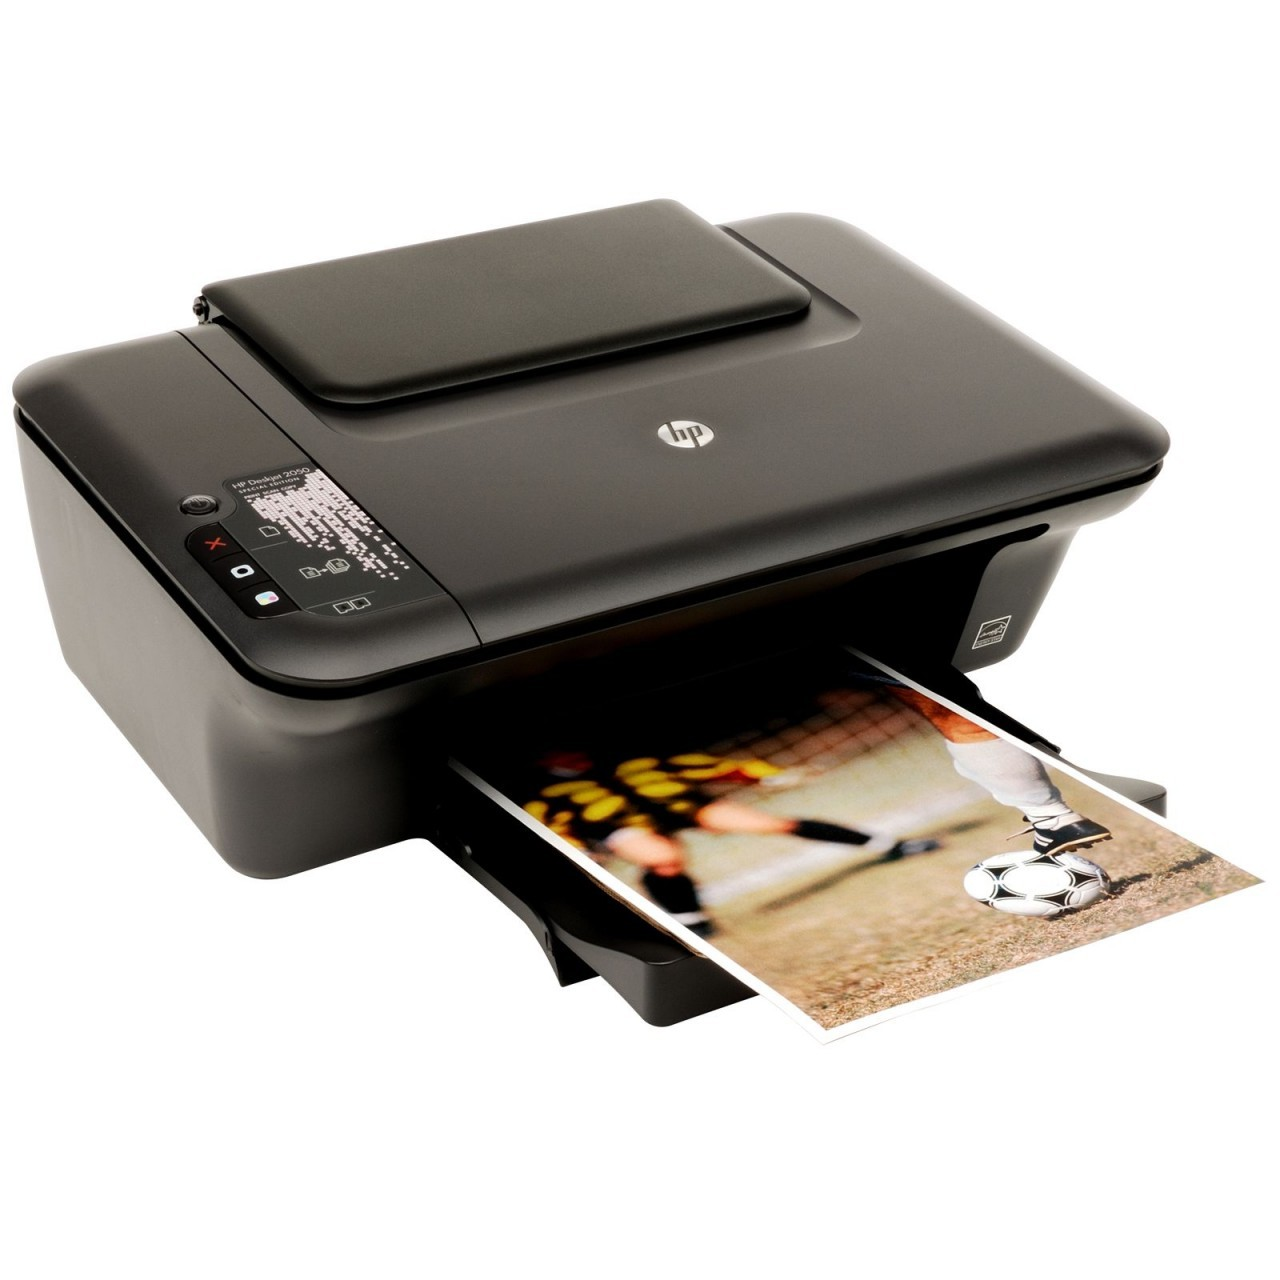 HP Deskjet 2050A Driver Software Download install For Windows 10